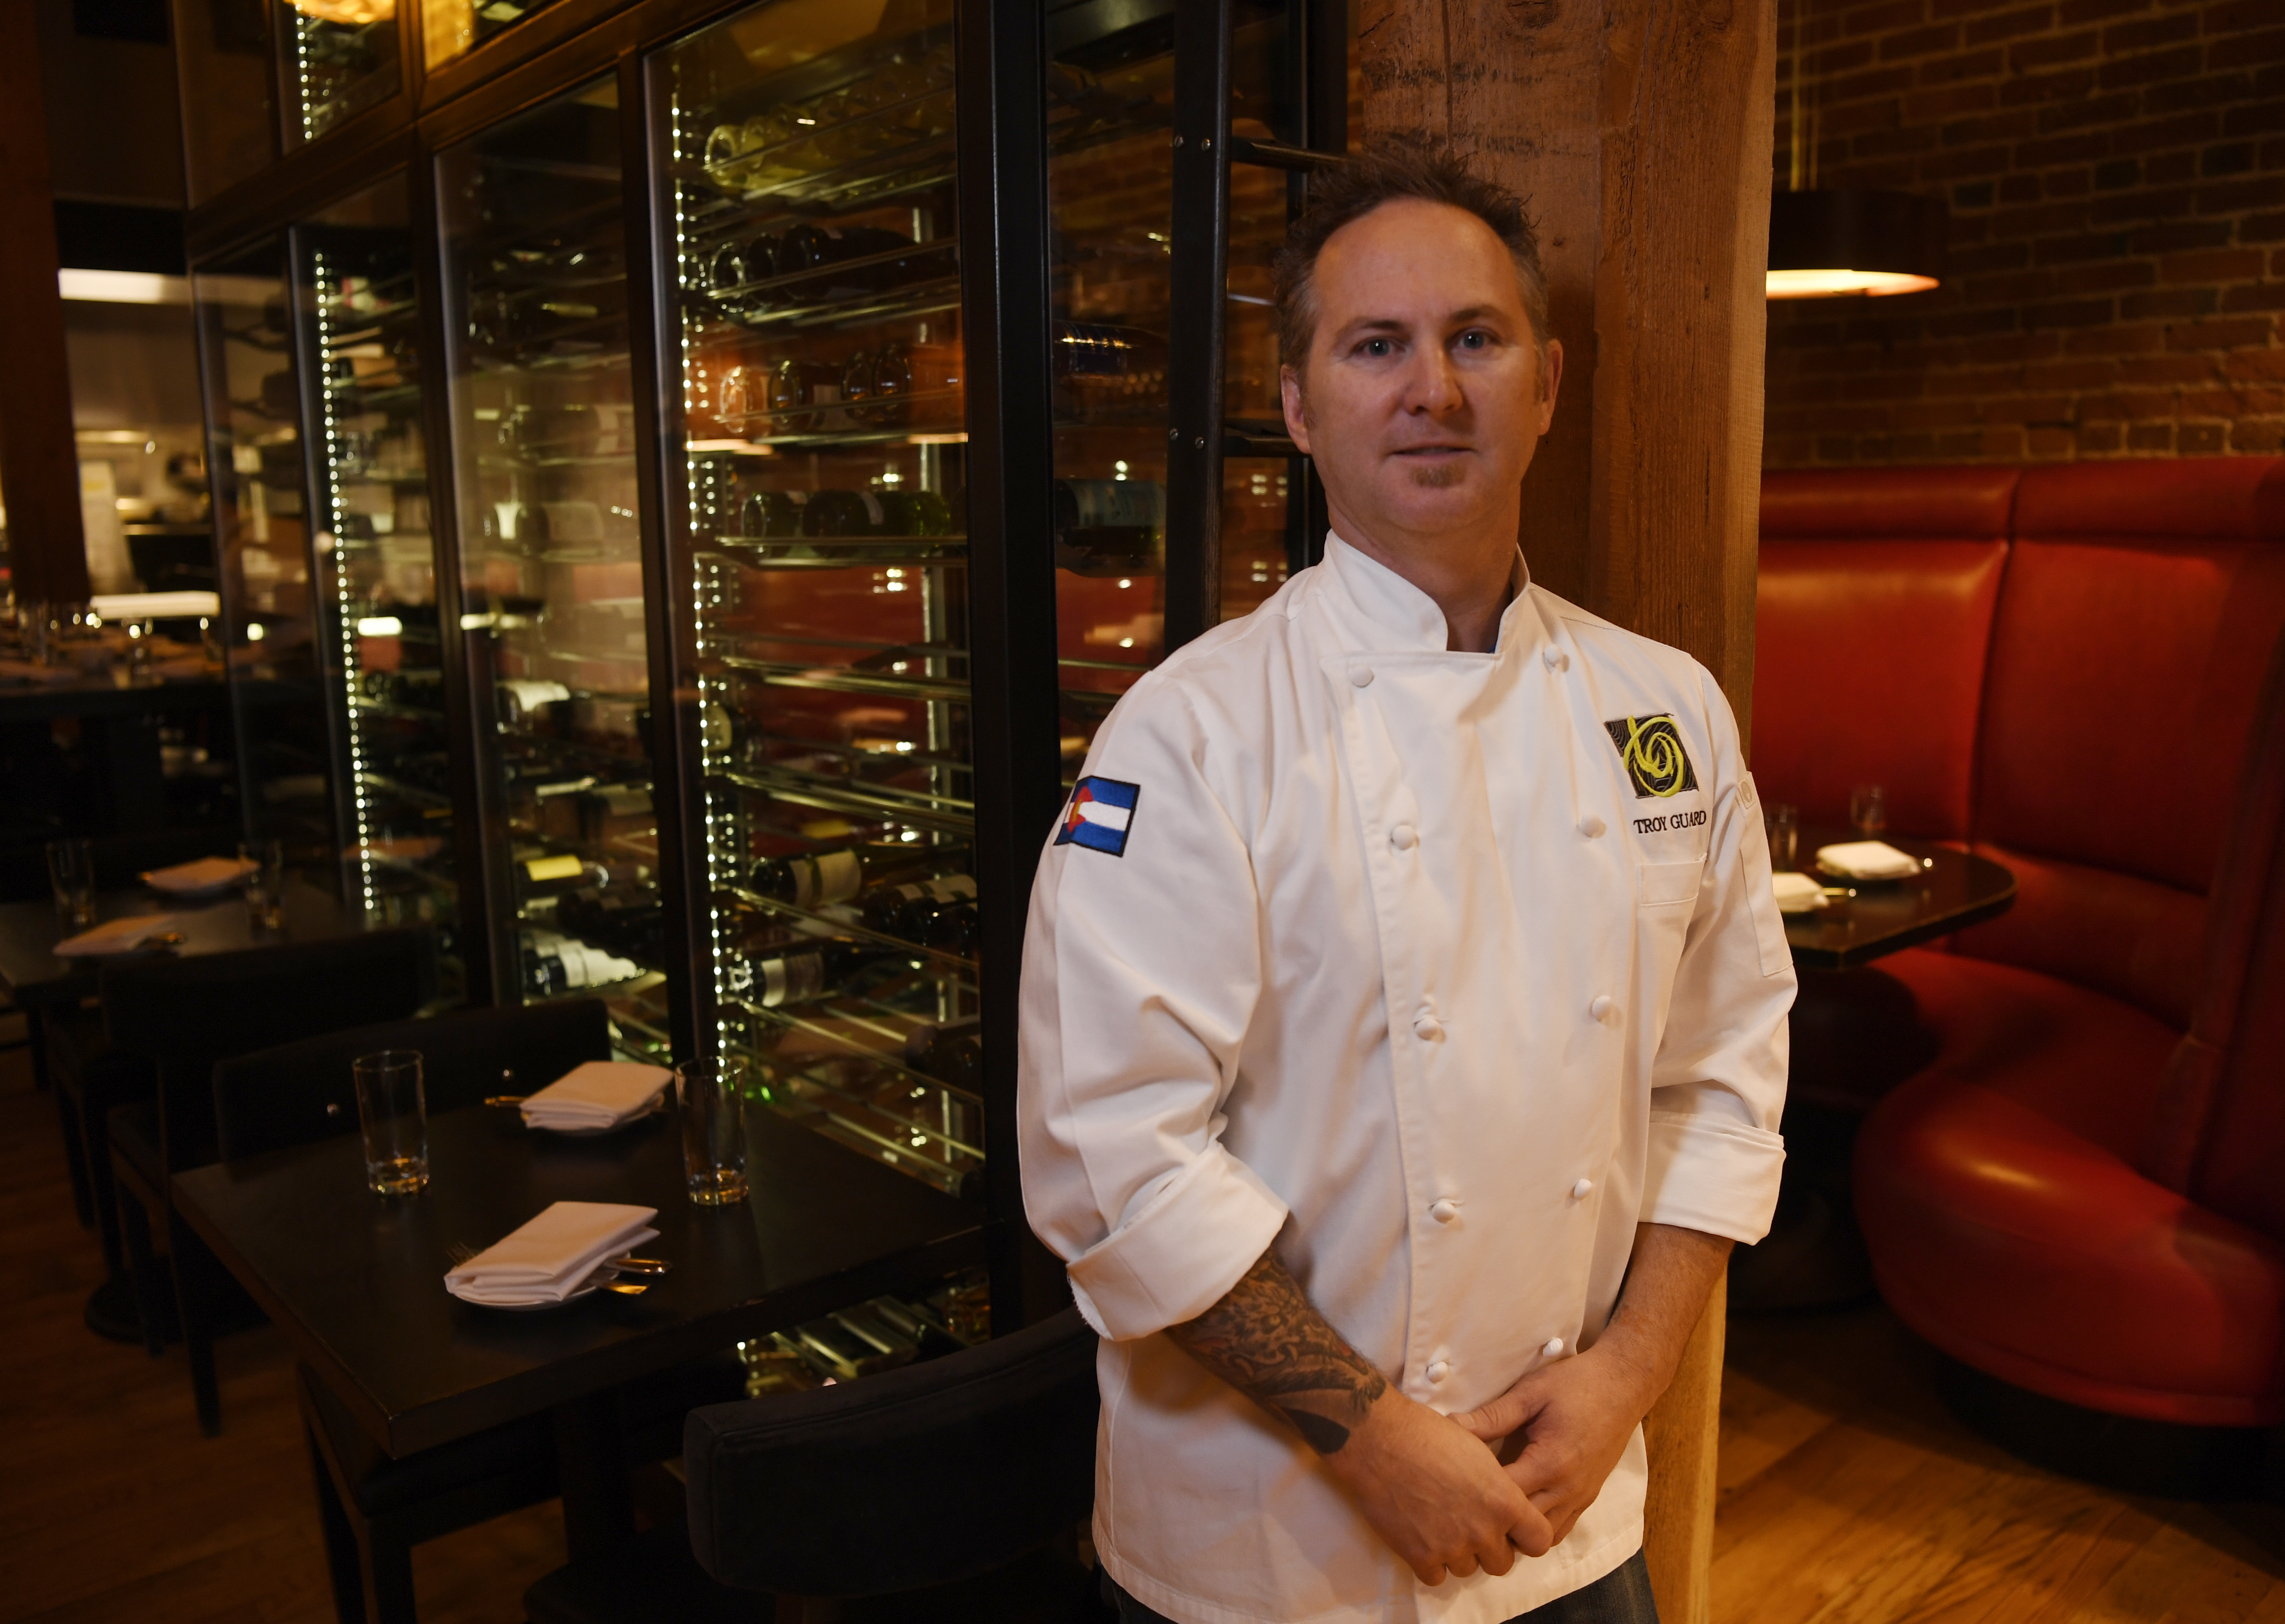 A photo of TAG restaurant group chef and owner Troy Guard standing with his arms together in front of him. Wine bottle racks in his TAG restaurant are visible behind him.